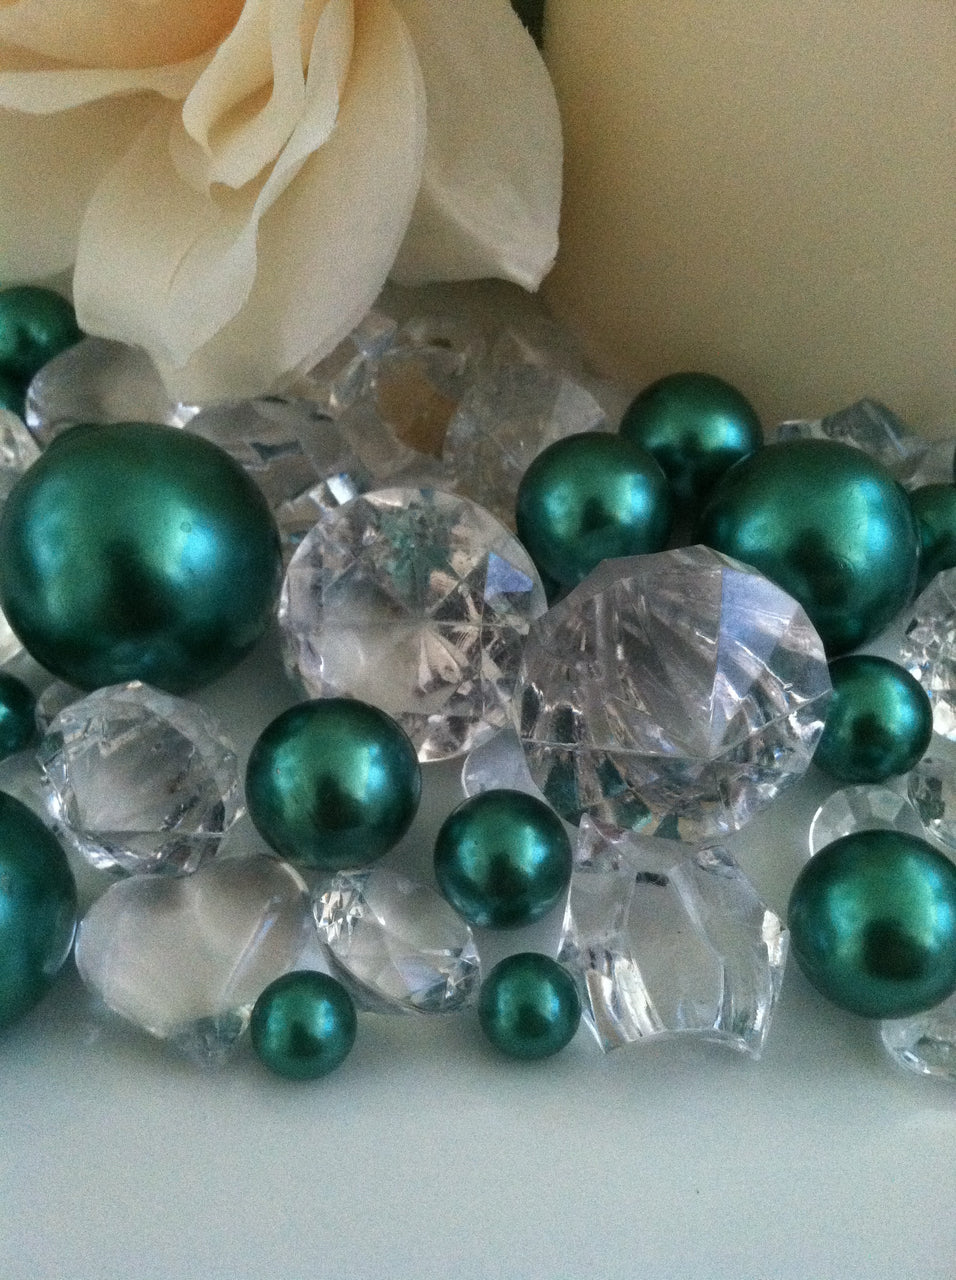 Pearl and Diamond Table Scatter/Confetti, 80pcs Green Pearls & Clear Diamond Gem Mix, Vase Fillers